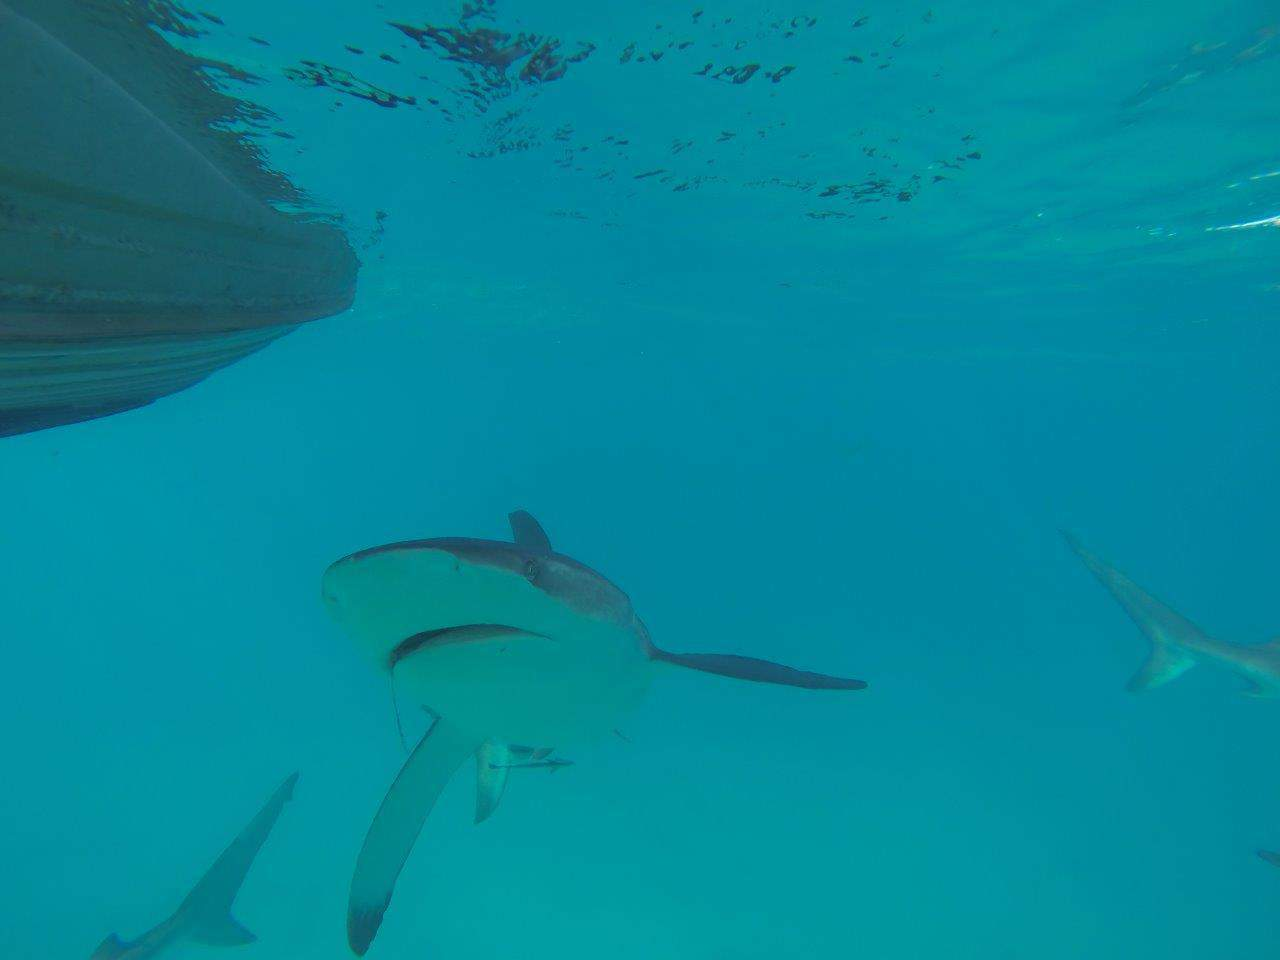 Sharks looking for food